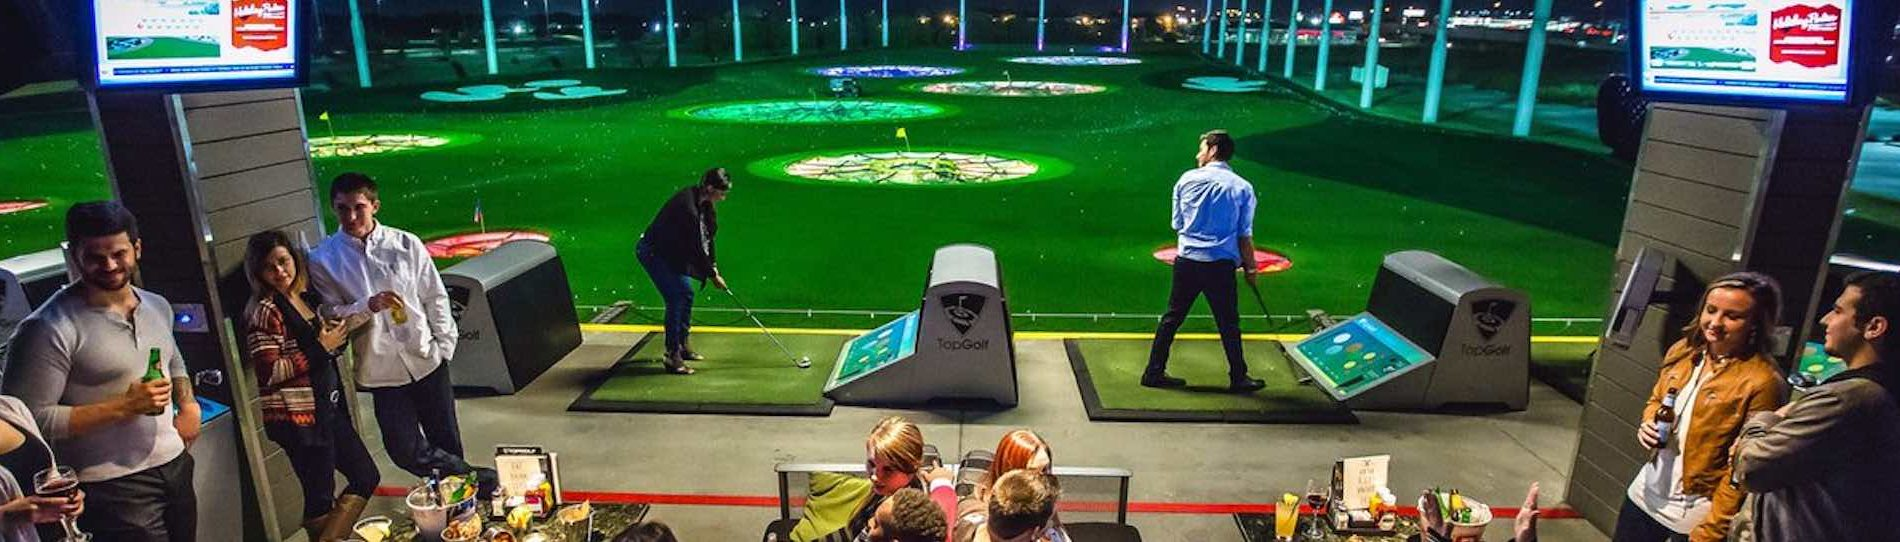 group of bucks playing golf at top golf